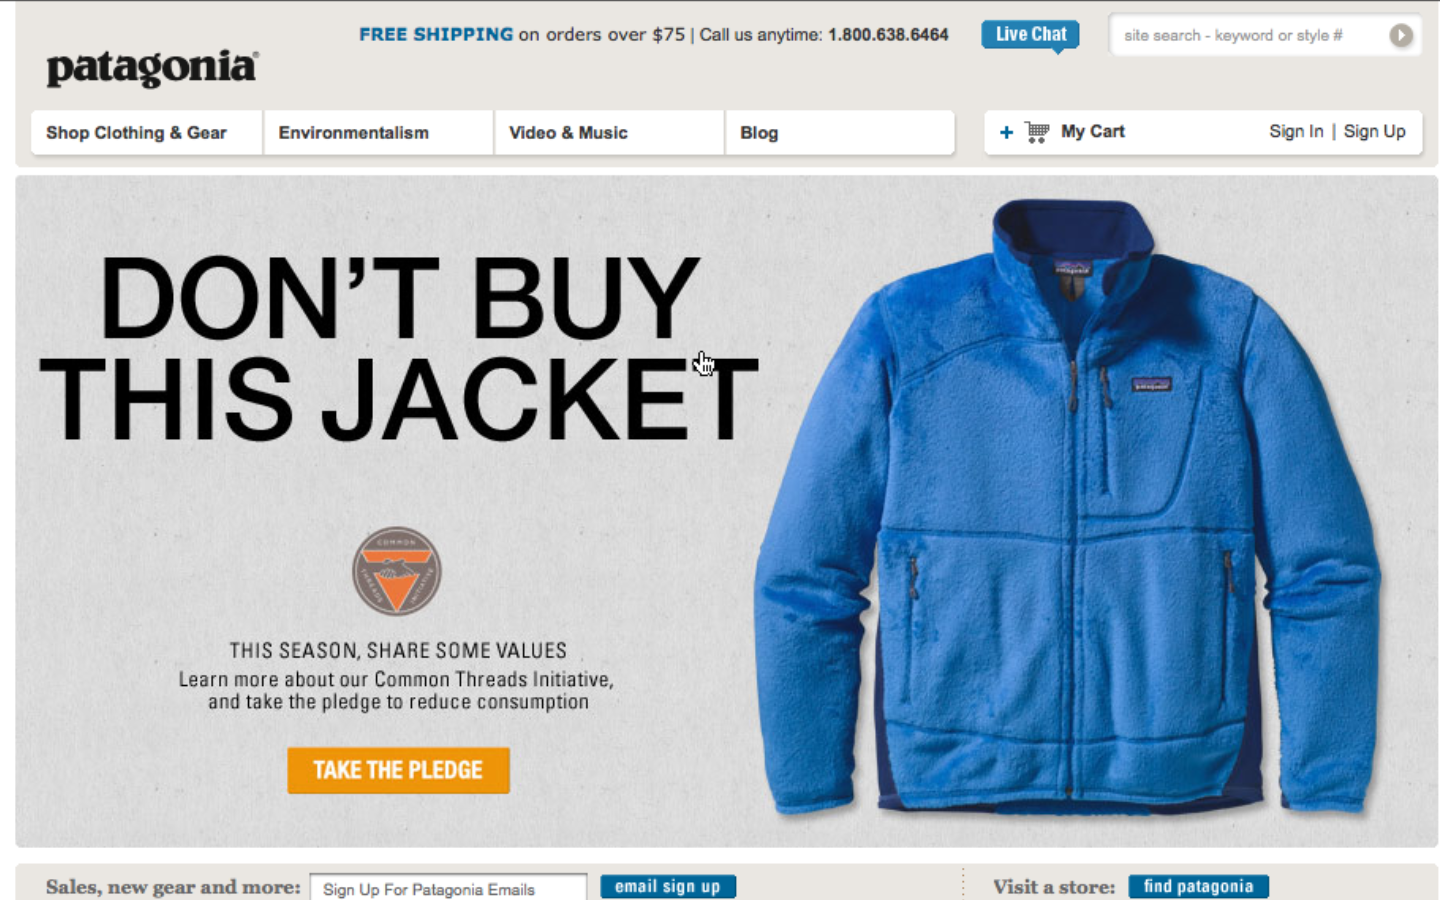 patagonia-dont-buy-jacket